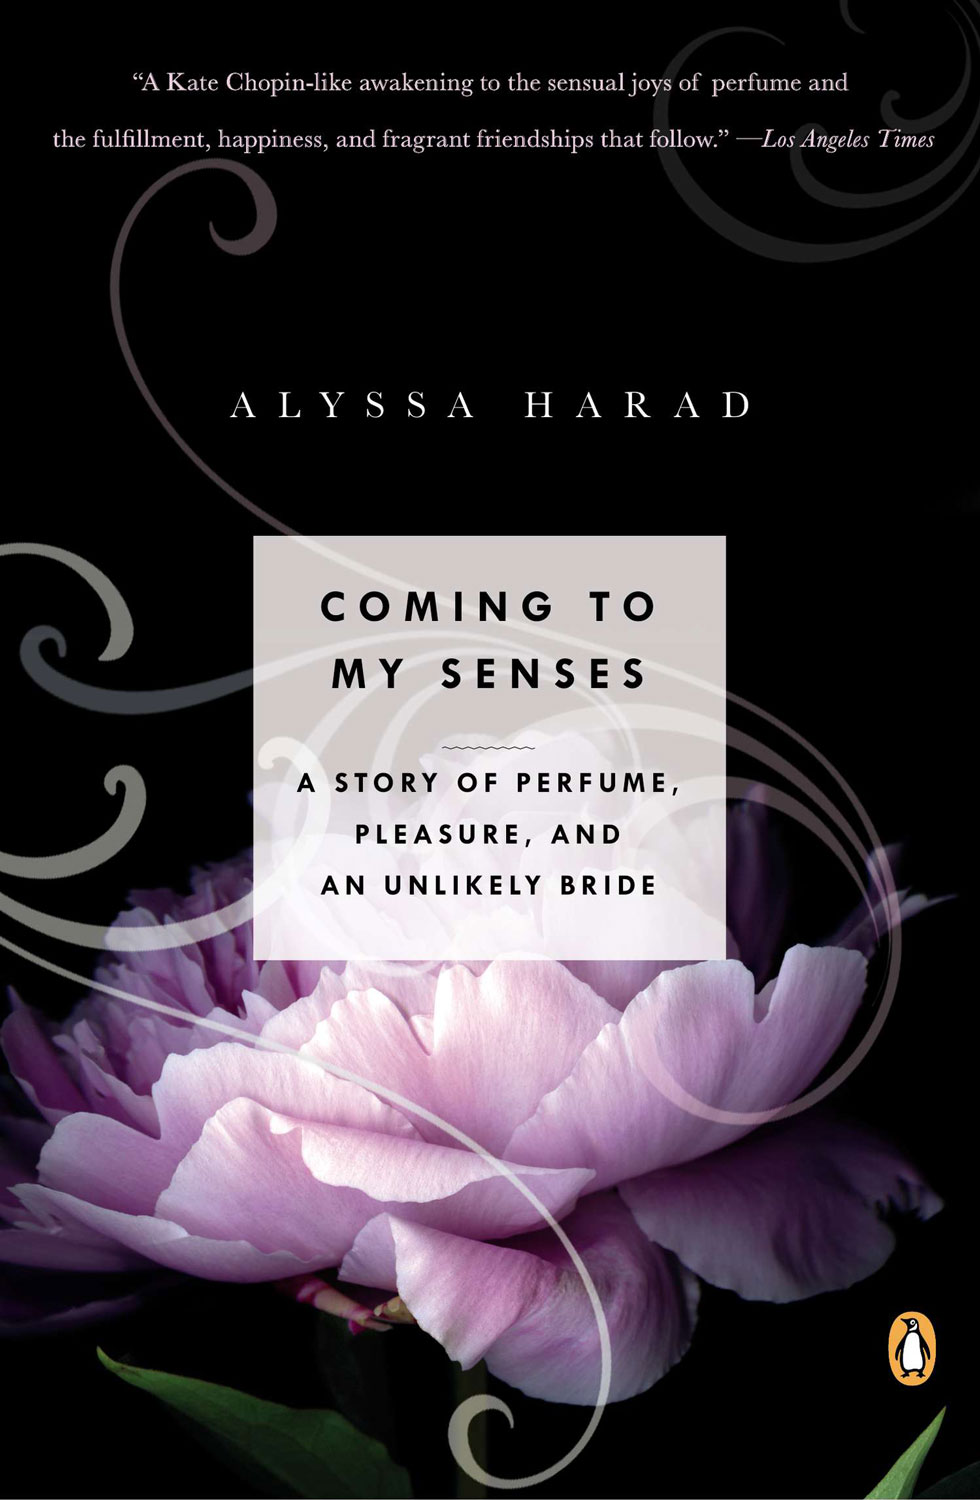 Alyssa Harad, Coming to My Senses: A Story of Perfume, Pleasure, and an Unlikely Bride (2012)